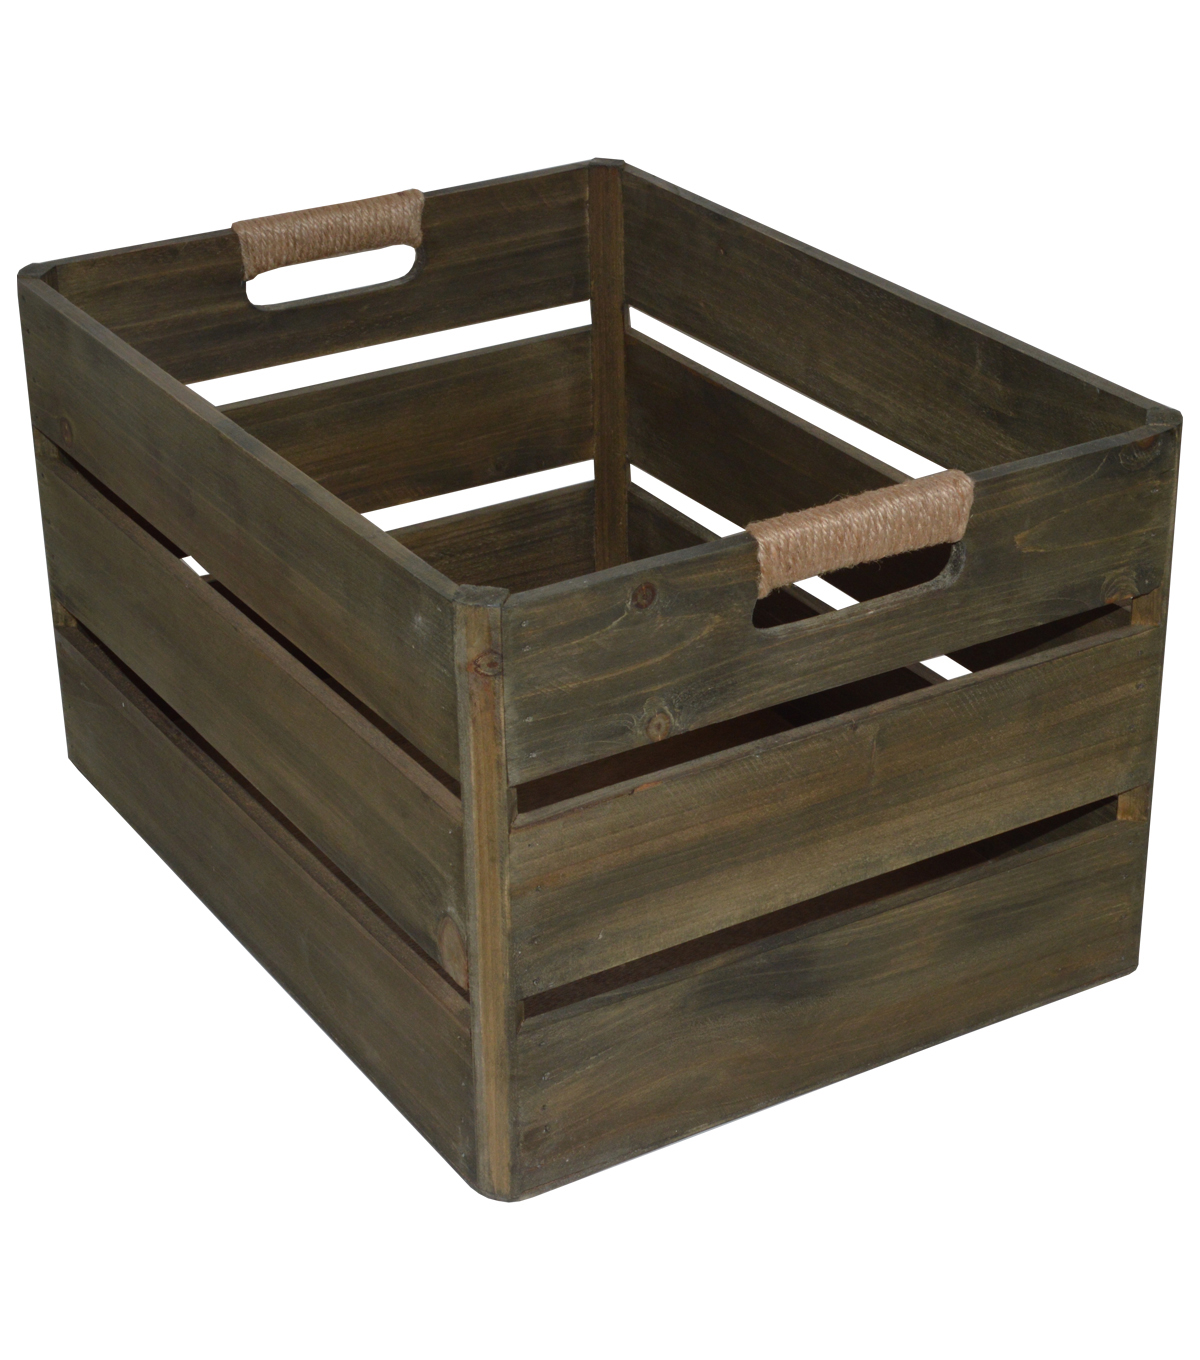 Hudson 43 Farm Large Wood Bin-Natural